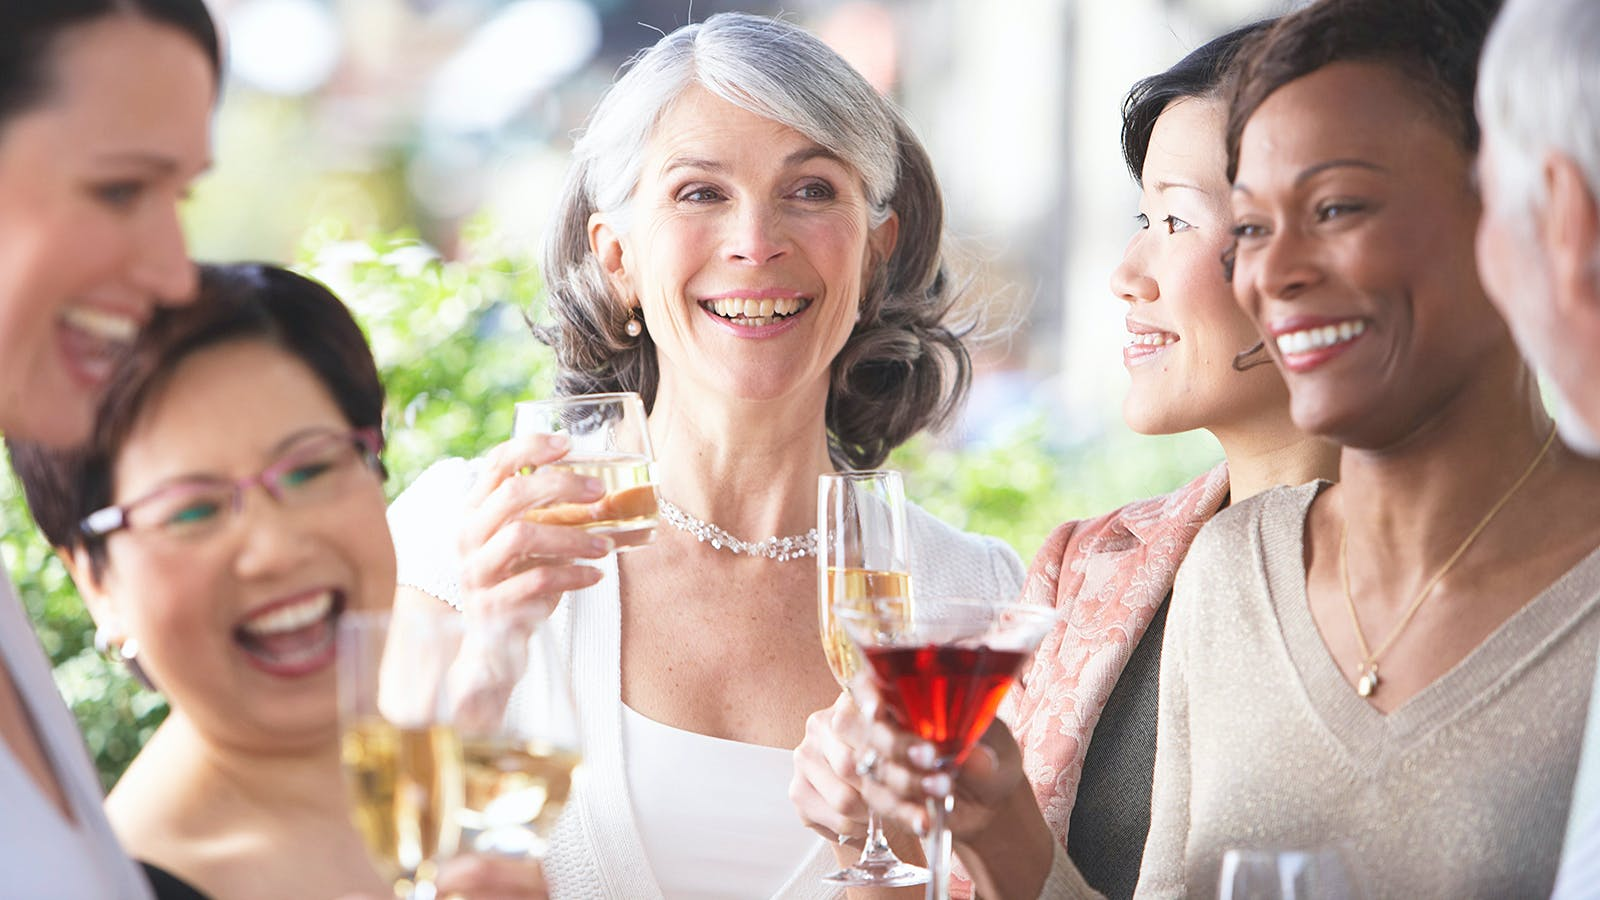 Red Wine Consumption Linked to Lower Risk of Cataracts